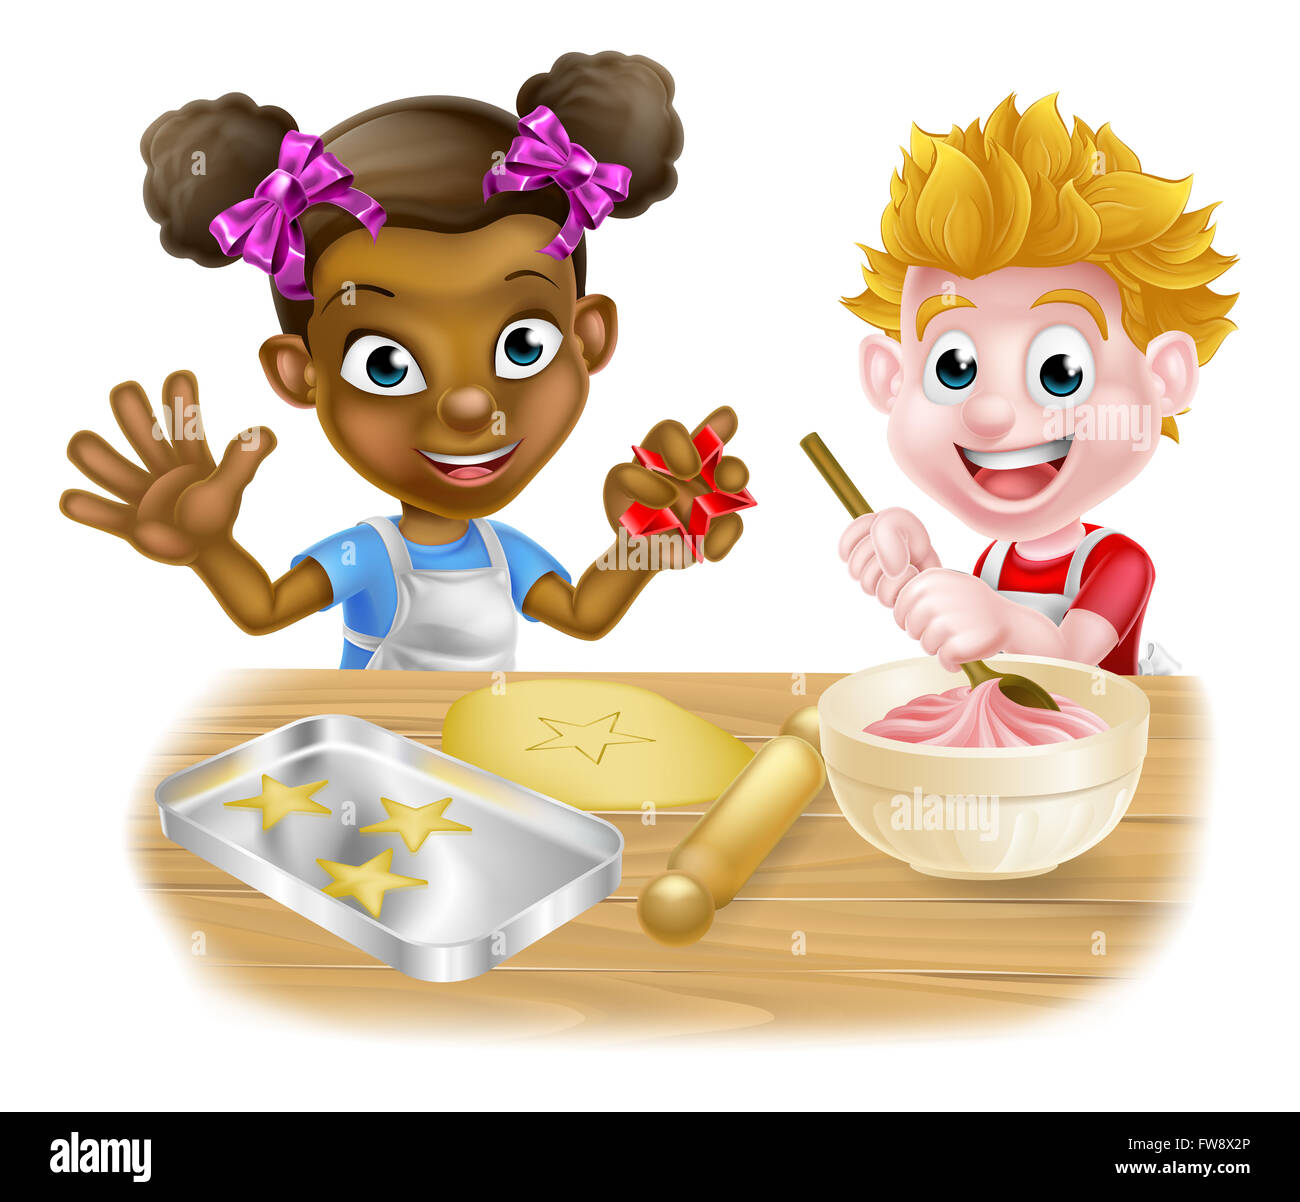 Kinder Küche Clipart Kinder Backen Clipart Home And Moven